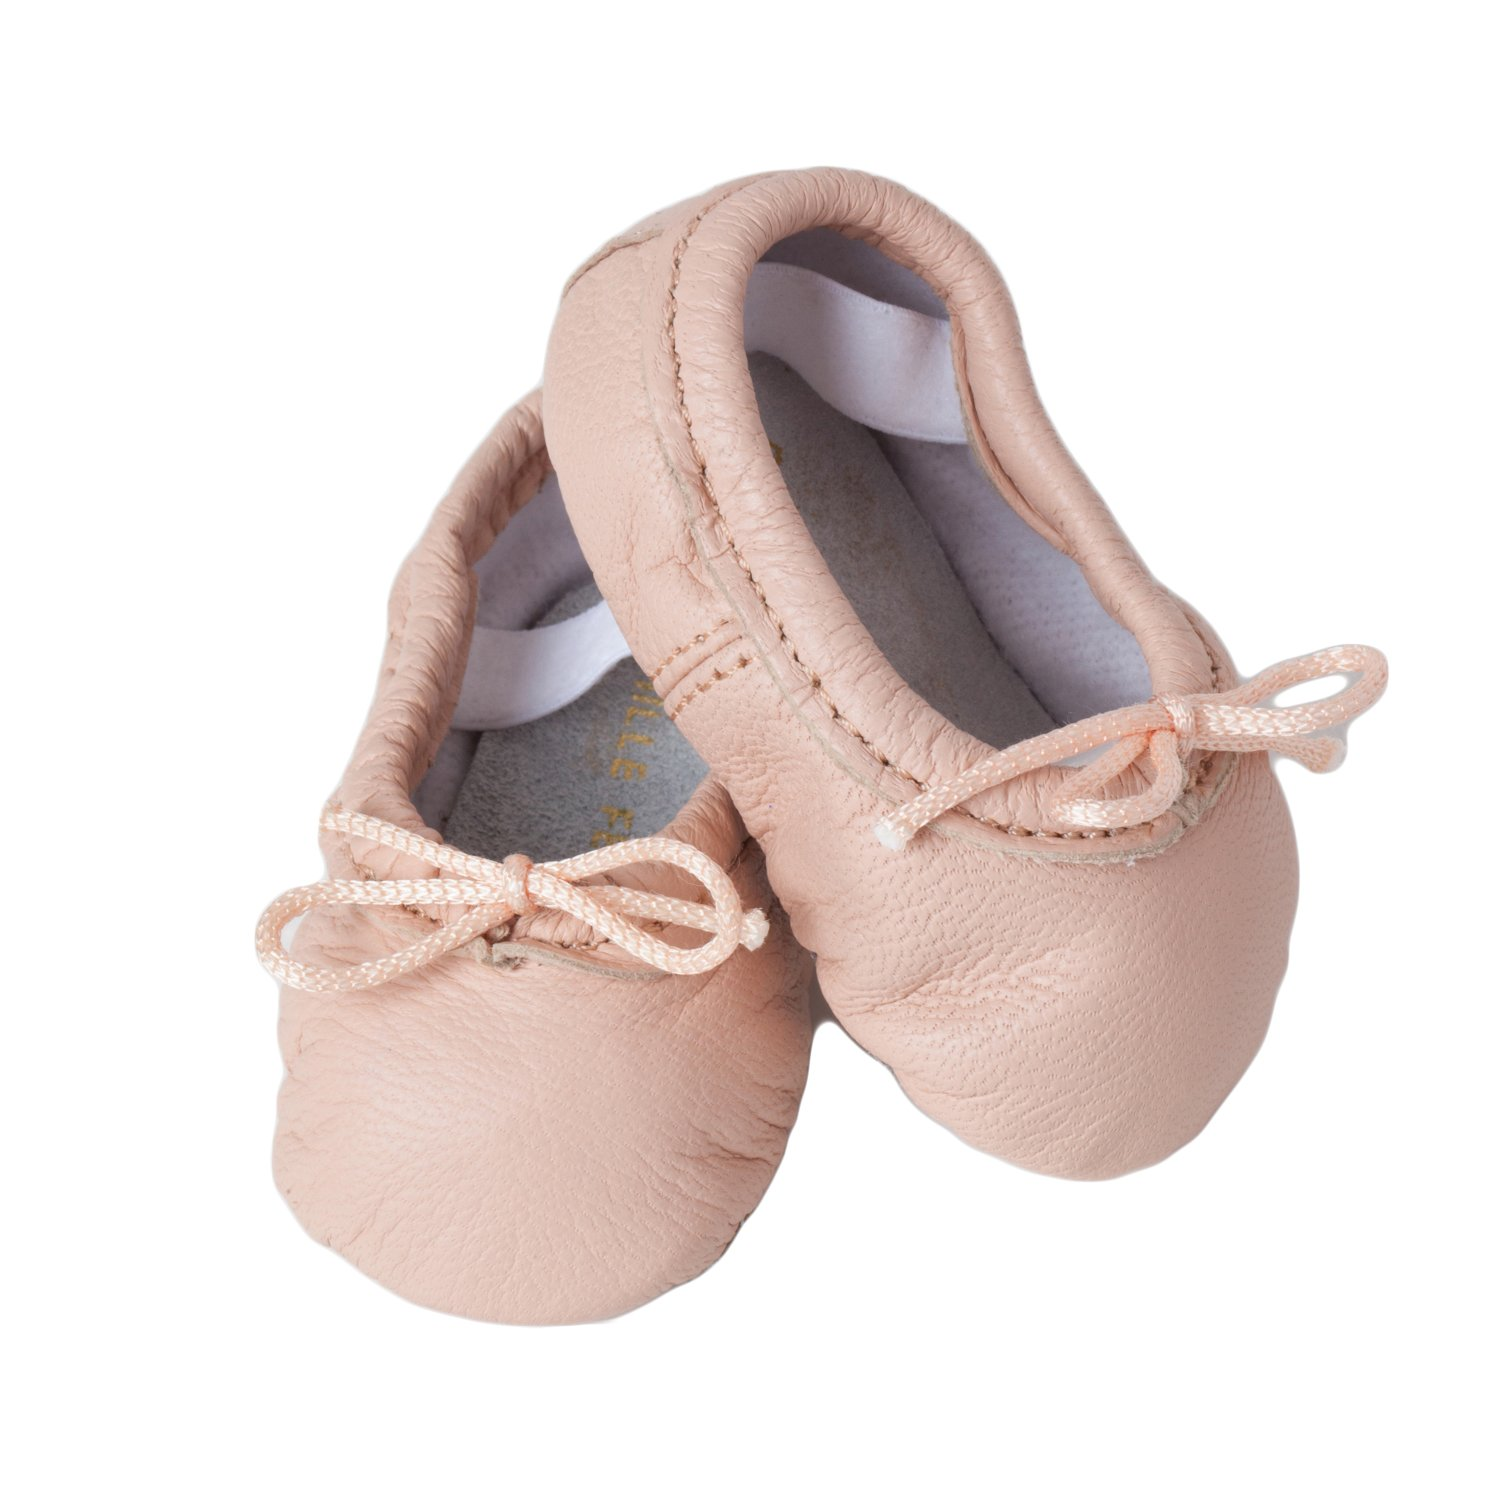 d562722658ec Amazon.com  Baby Ballet Slippers (infant toddler) - Prima Pink Leather shoes   Clothing